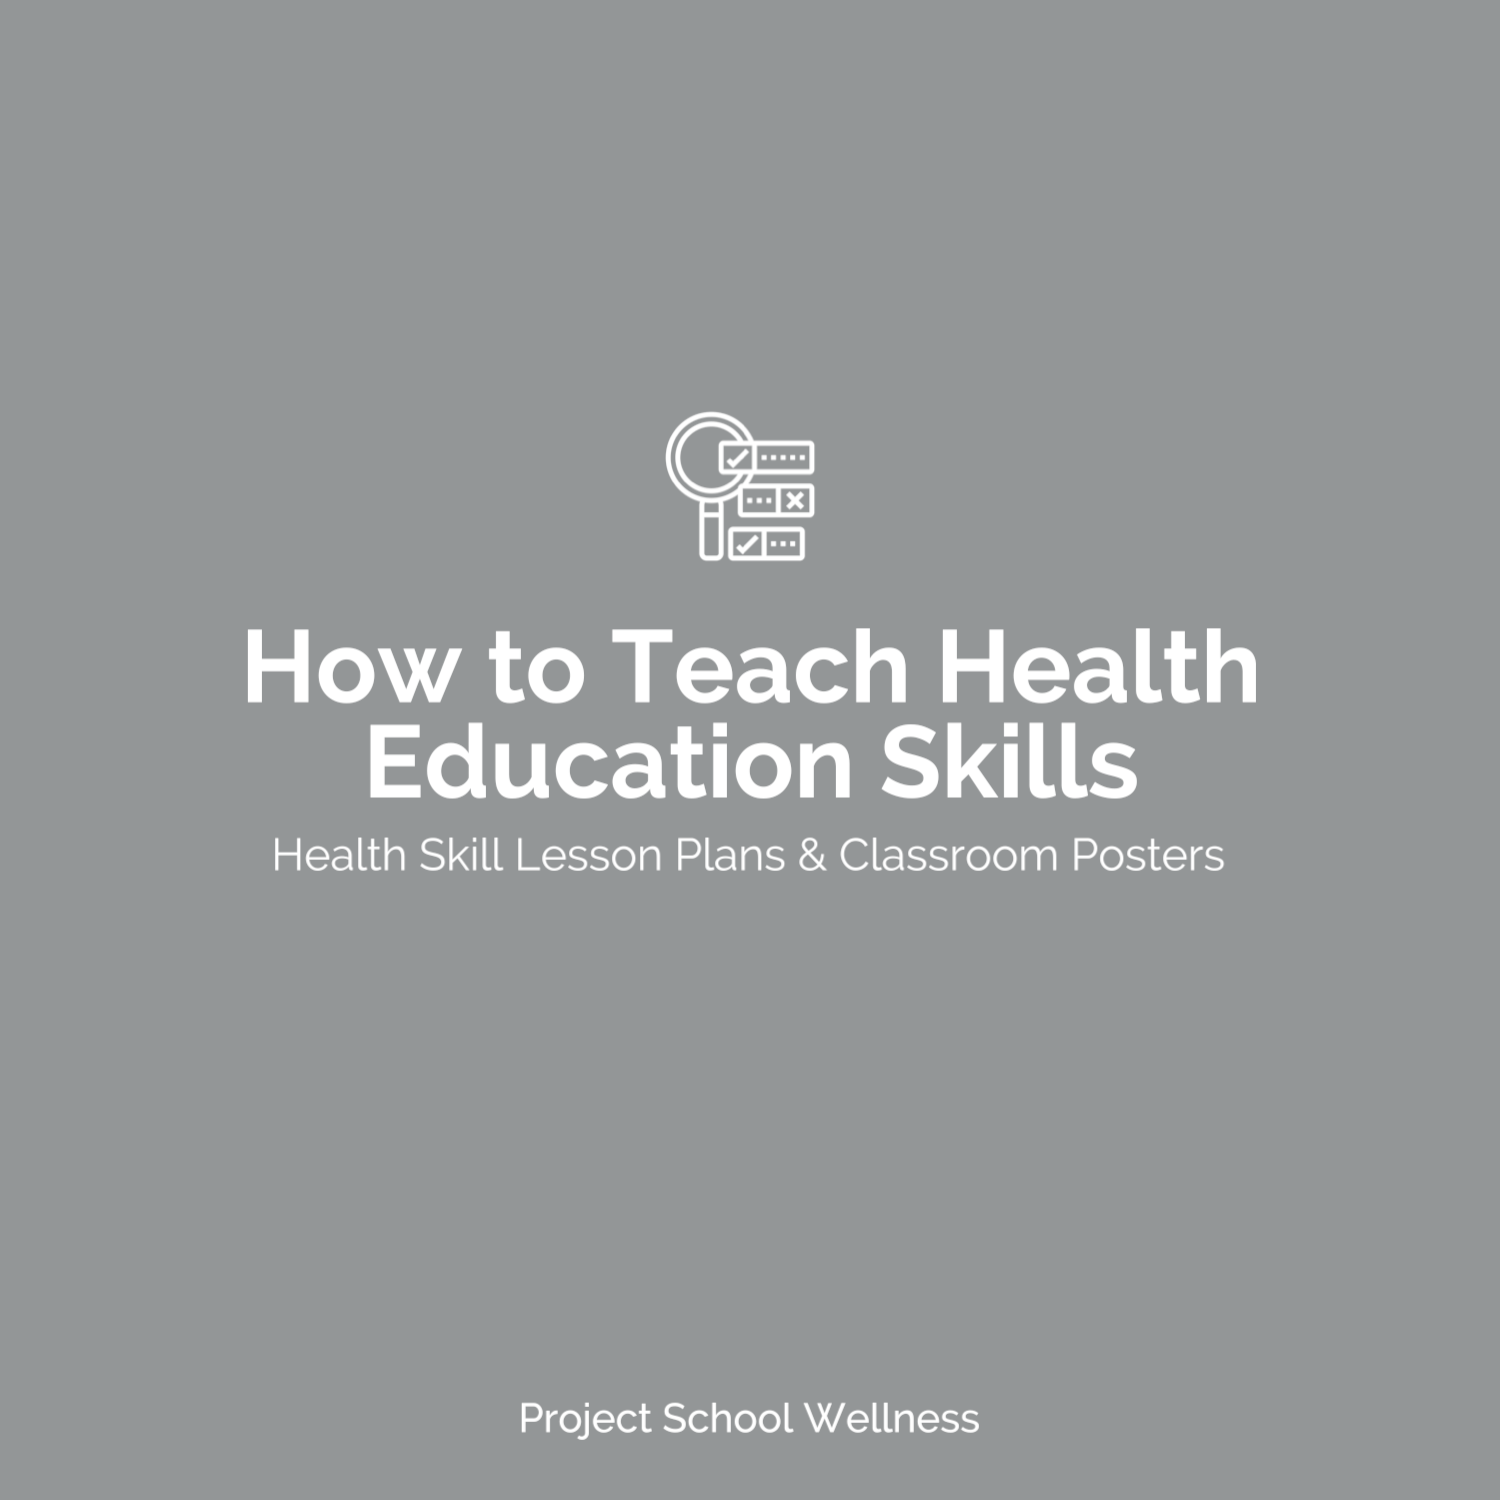 PSW Blog - How to Teach Health Education Skills and health skill lesson plans and classroom posters